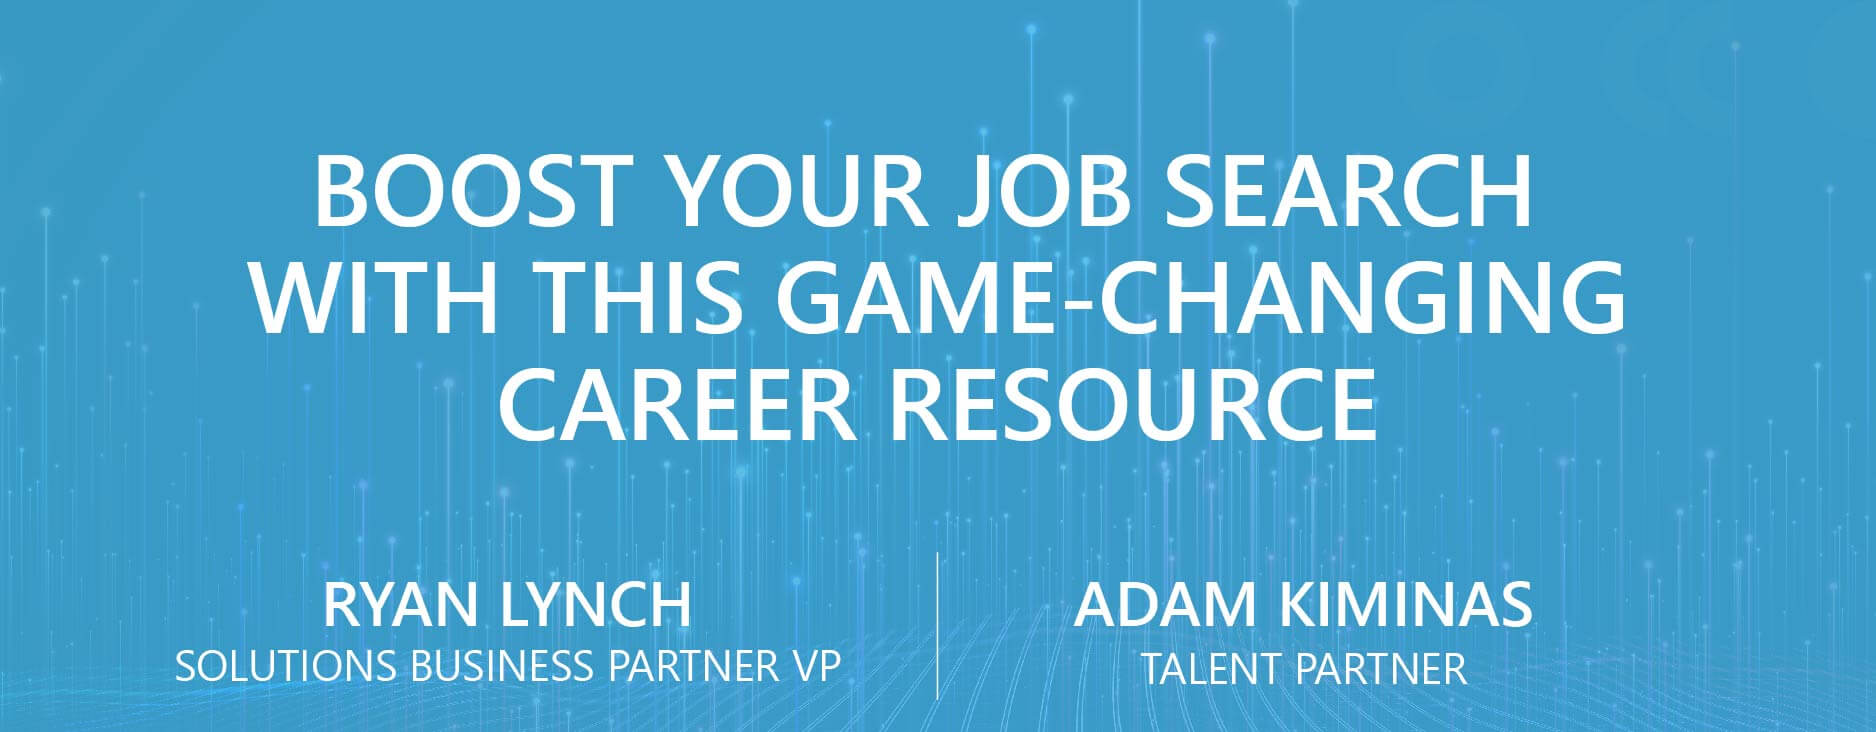 Boost Your Job Search With This Game-Changing Career Resource